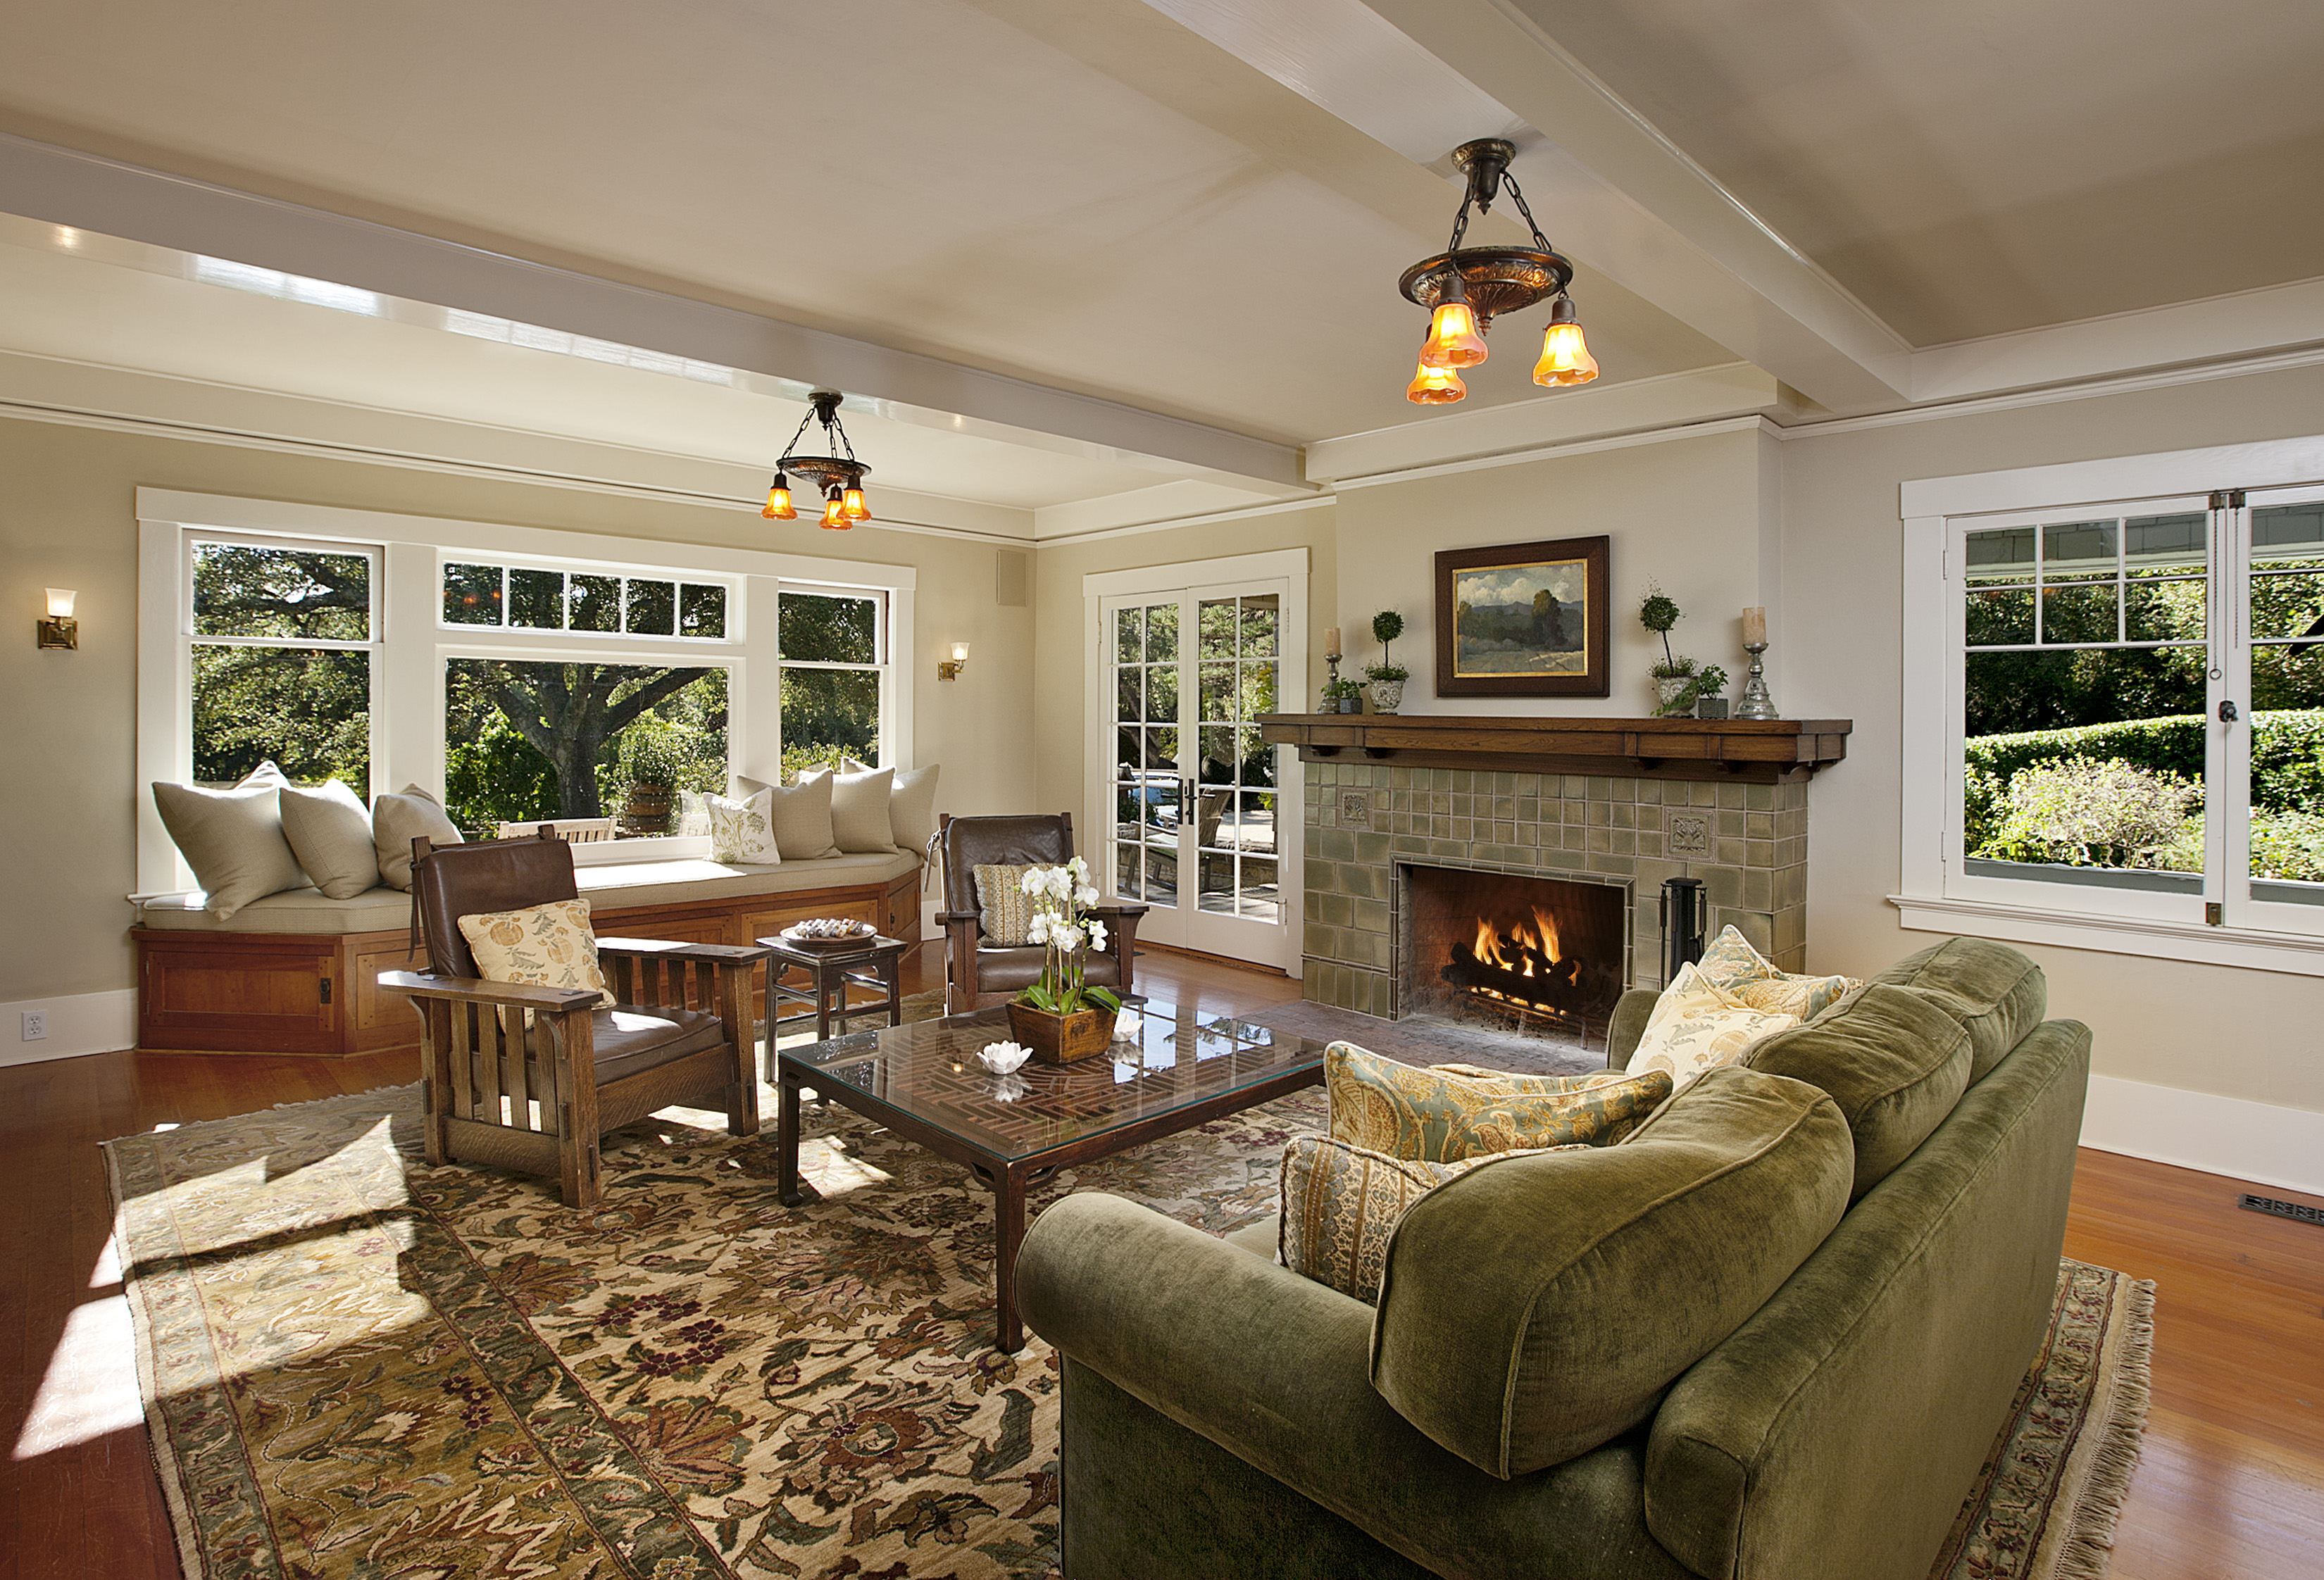 Popular home styles for 2012 montecito real estate for Mission style decorating living room